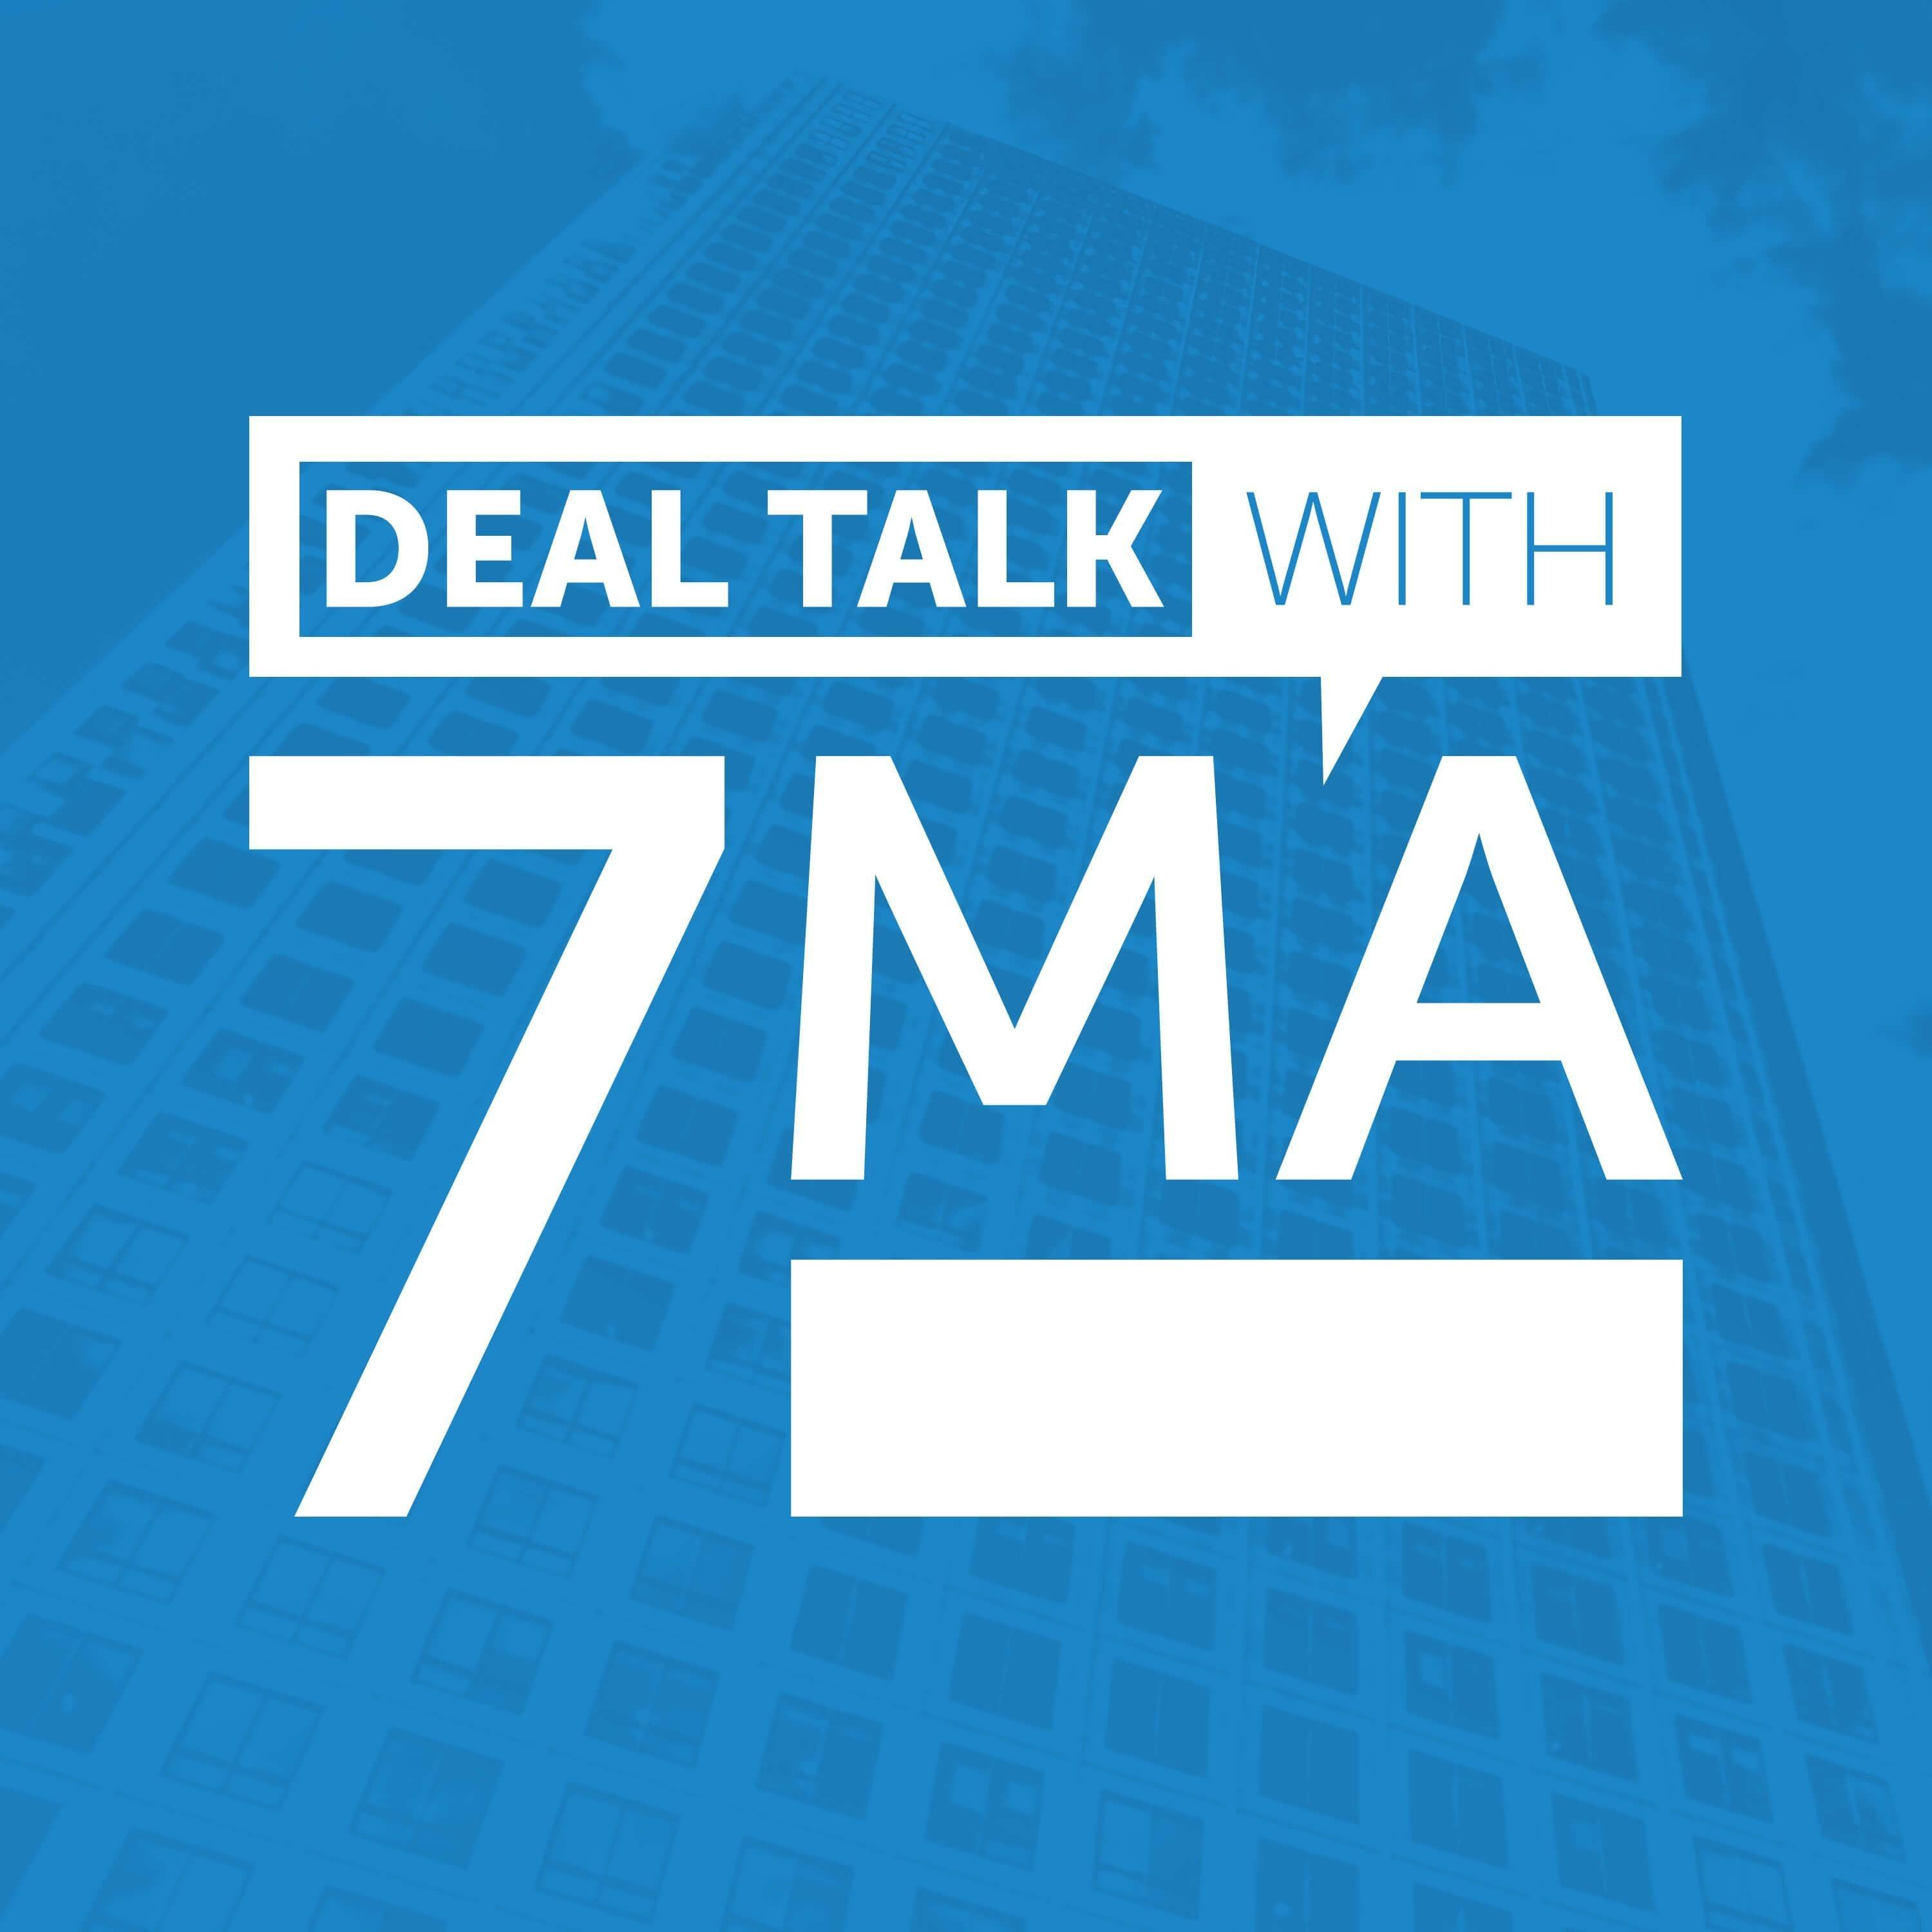 Artwork for podcast Deal Talk with 7MA